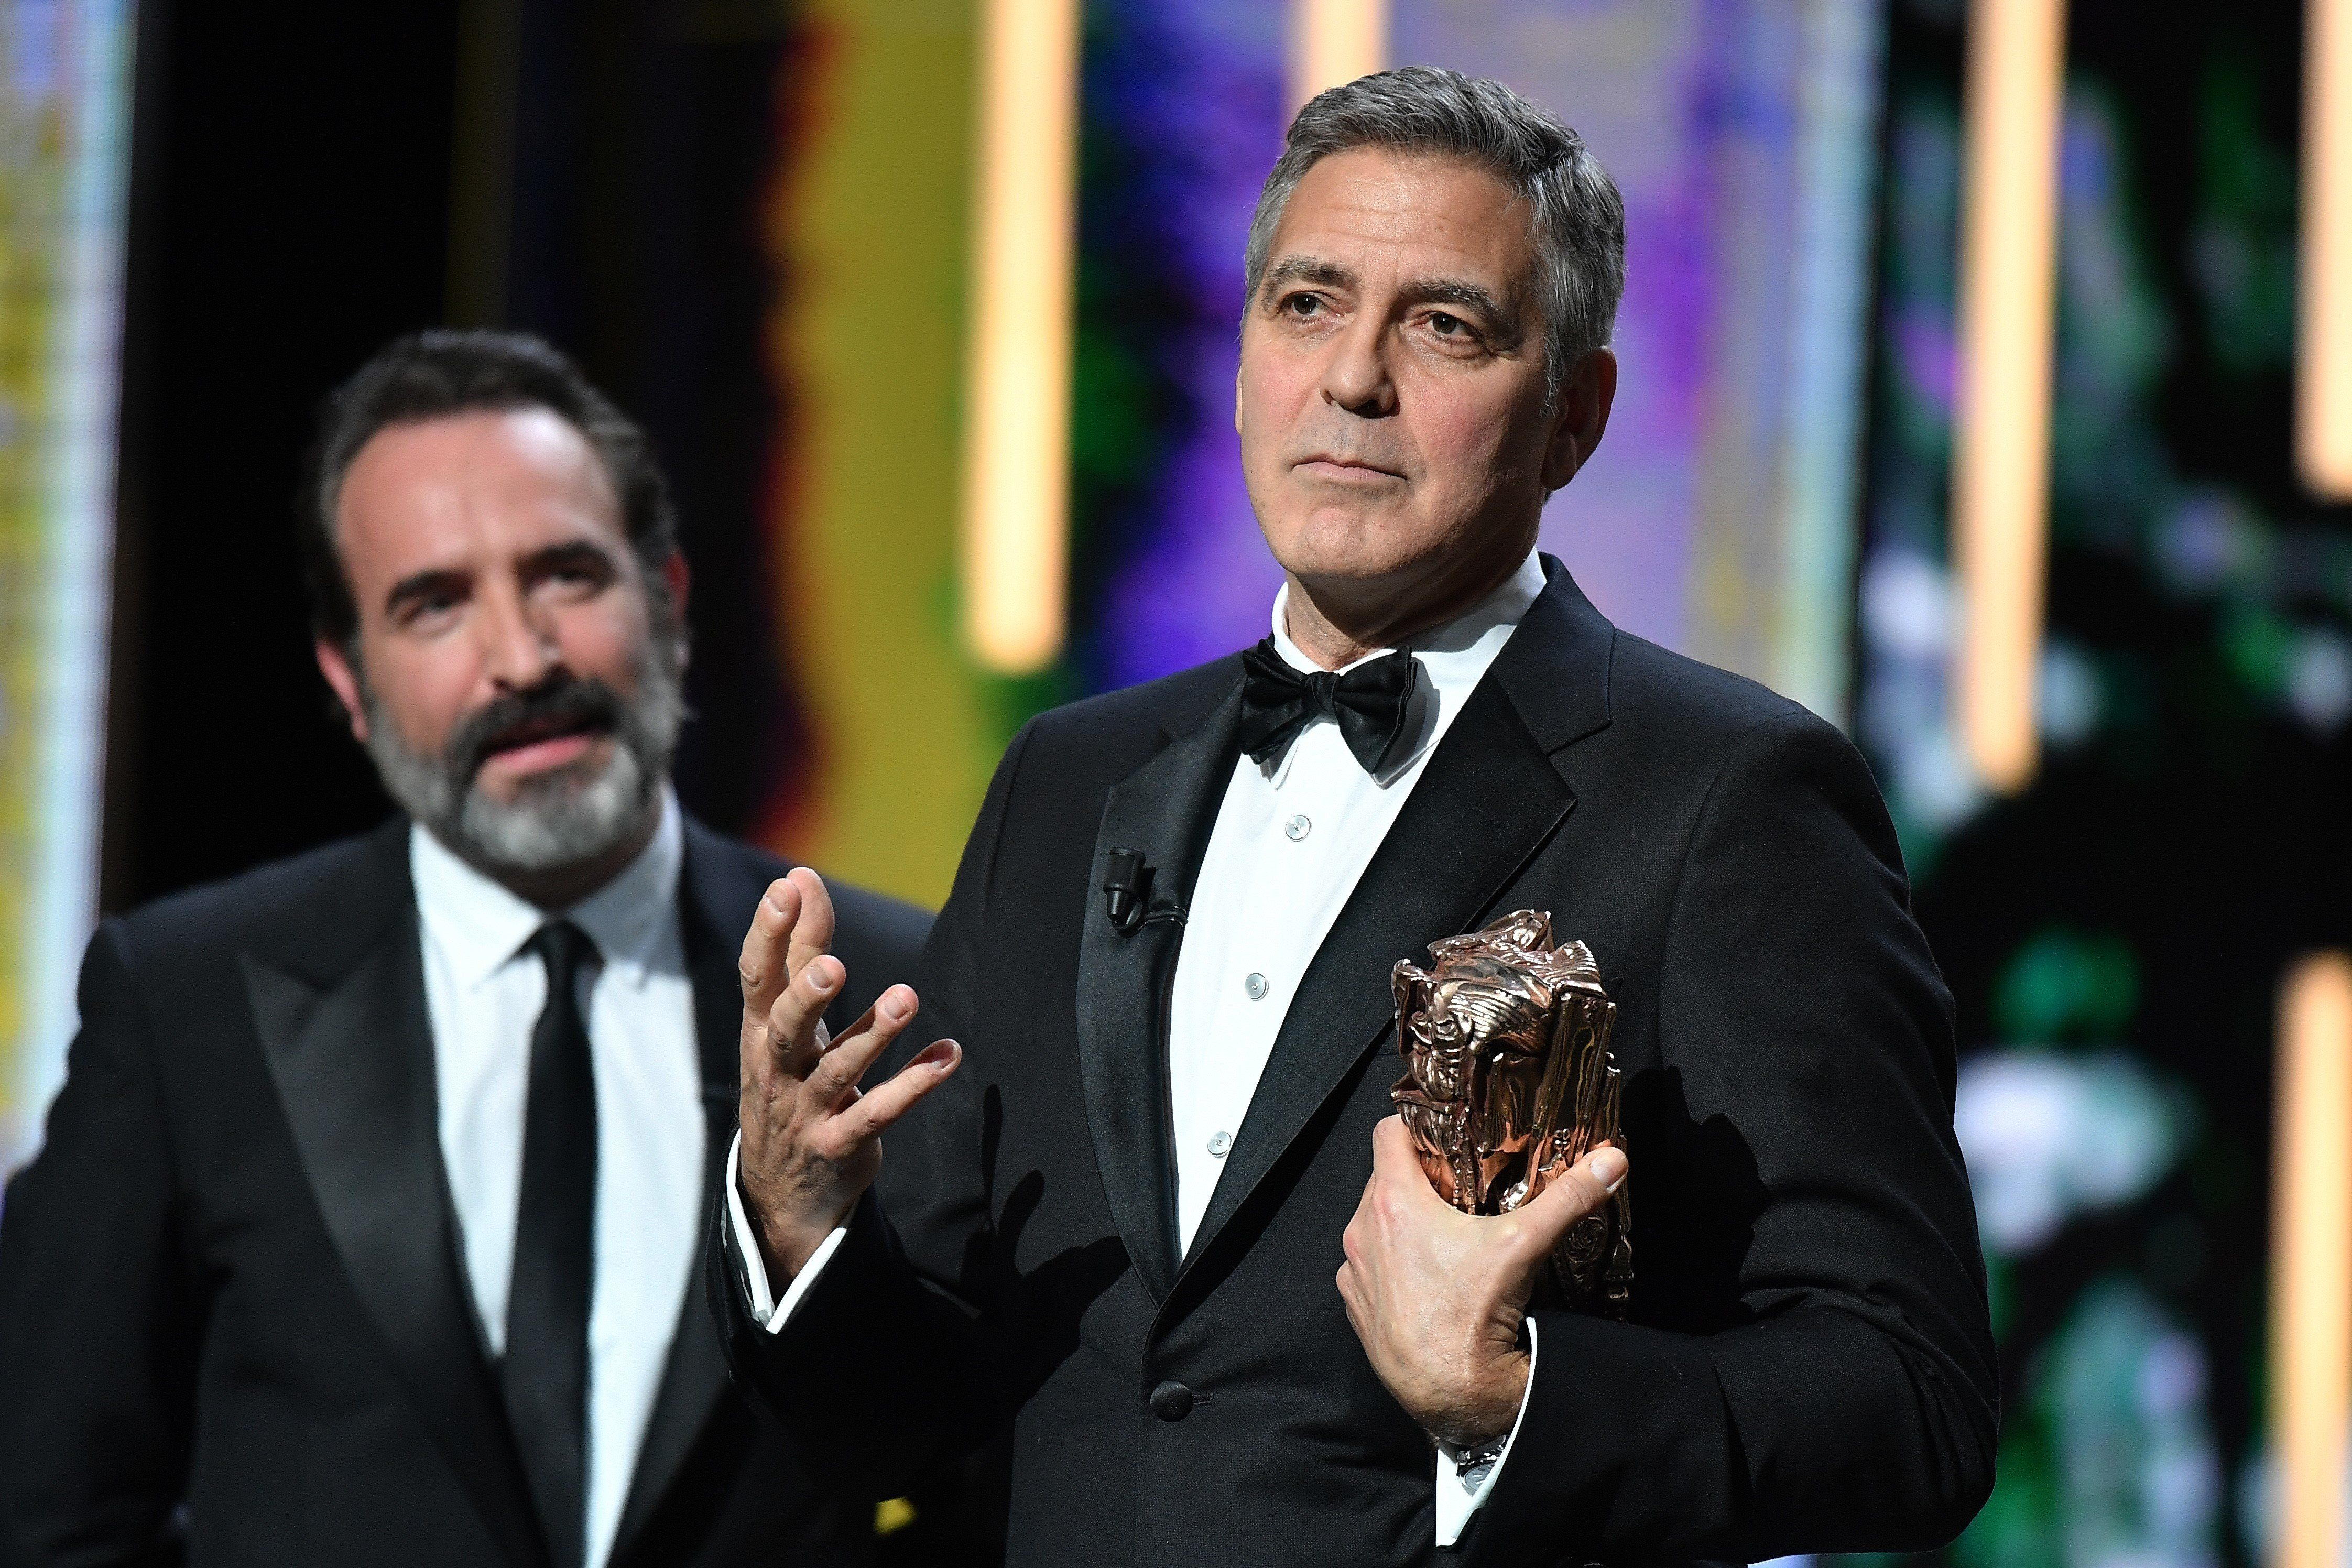 George Clooney took on President Donald Trump once again on